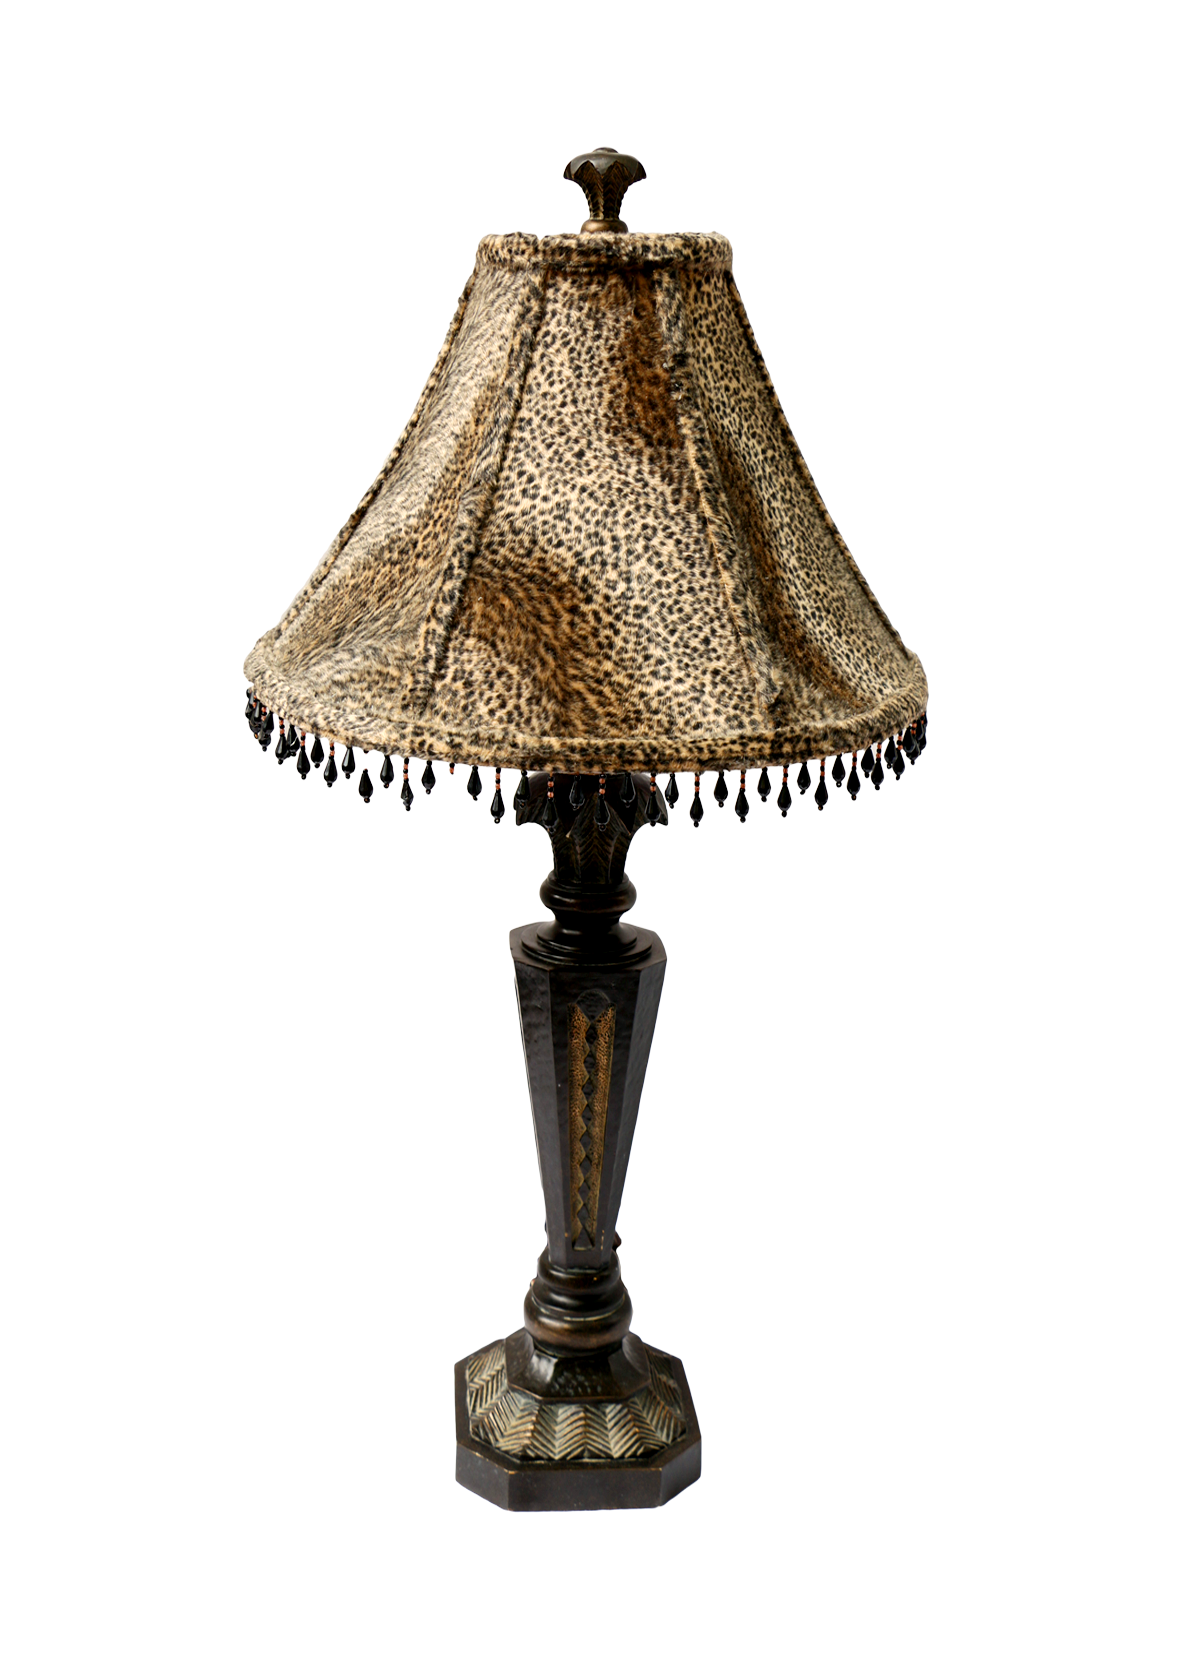 Wood carved table lamp with leopard print shade chairish for Floor lamp with leopard shade